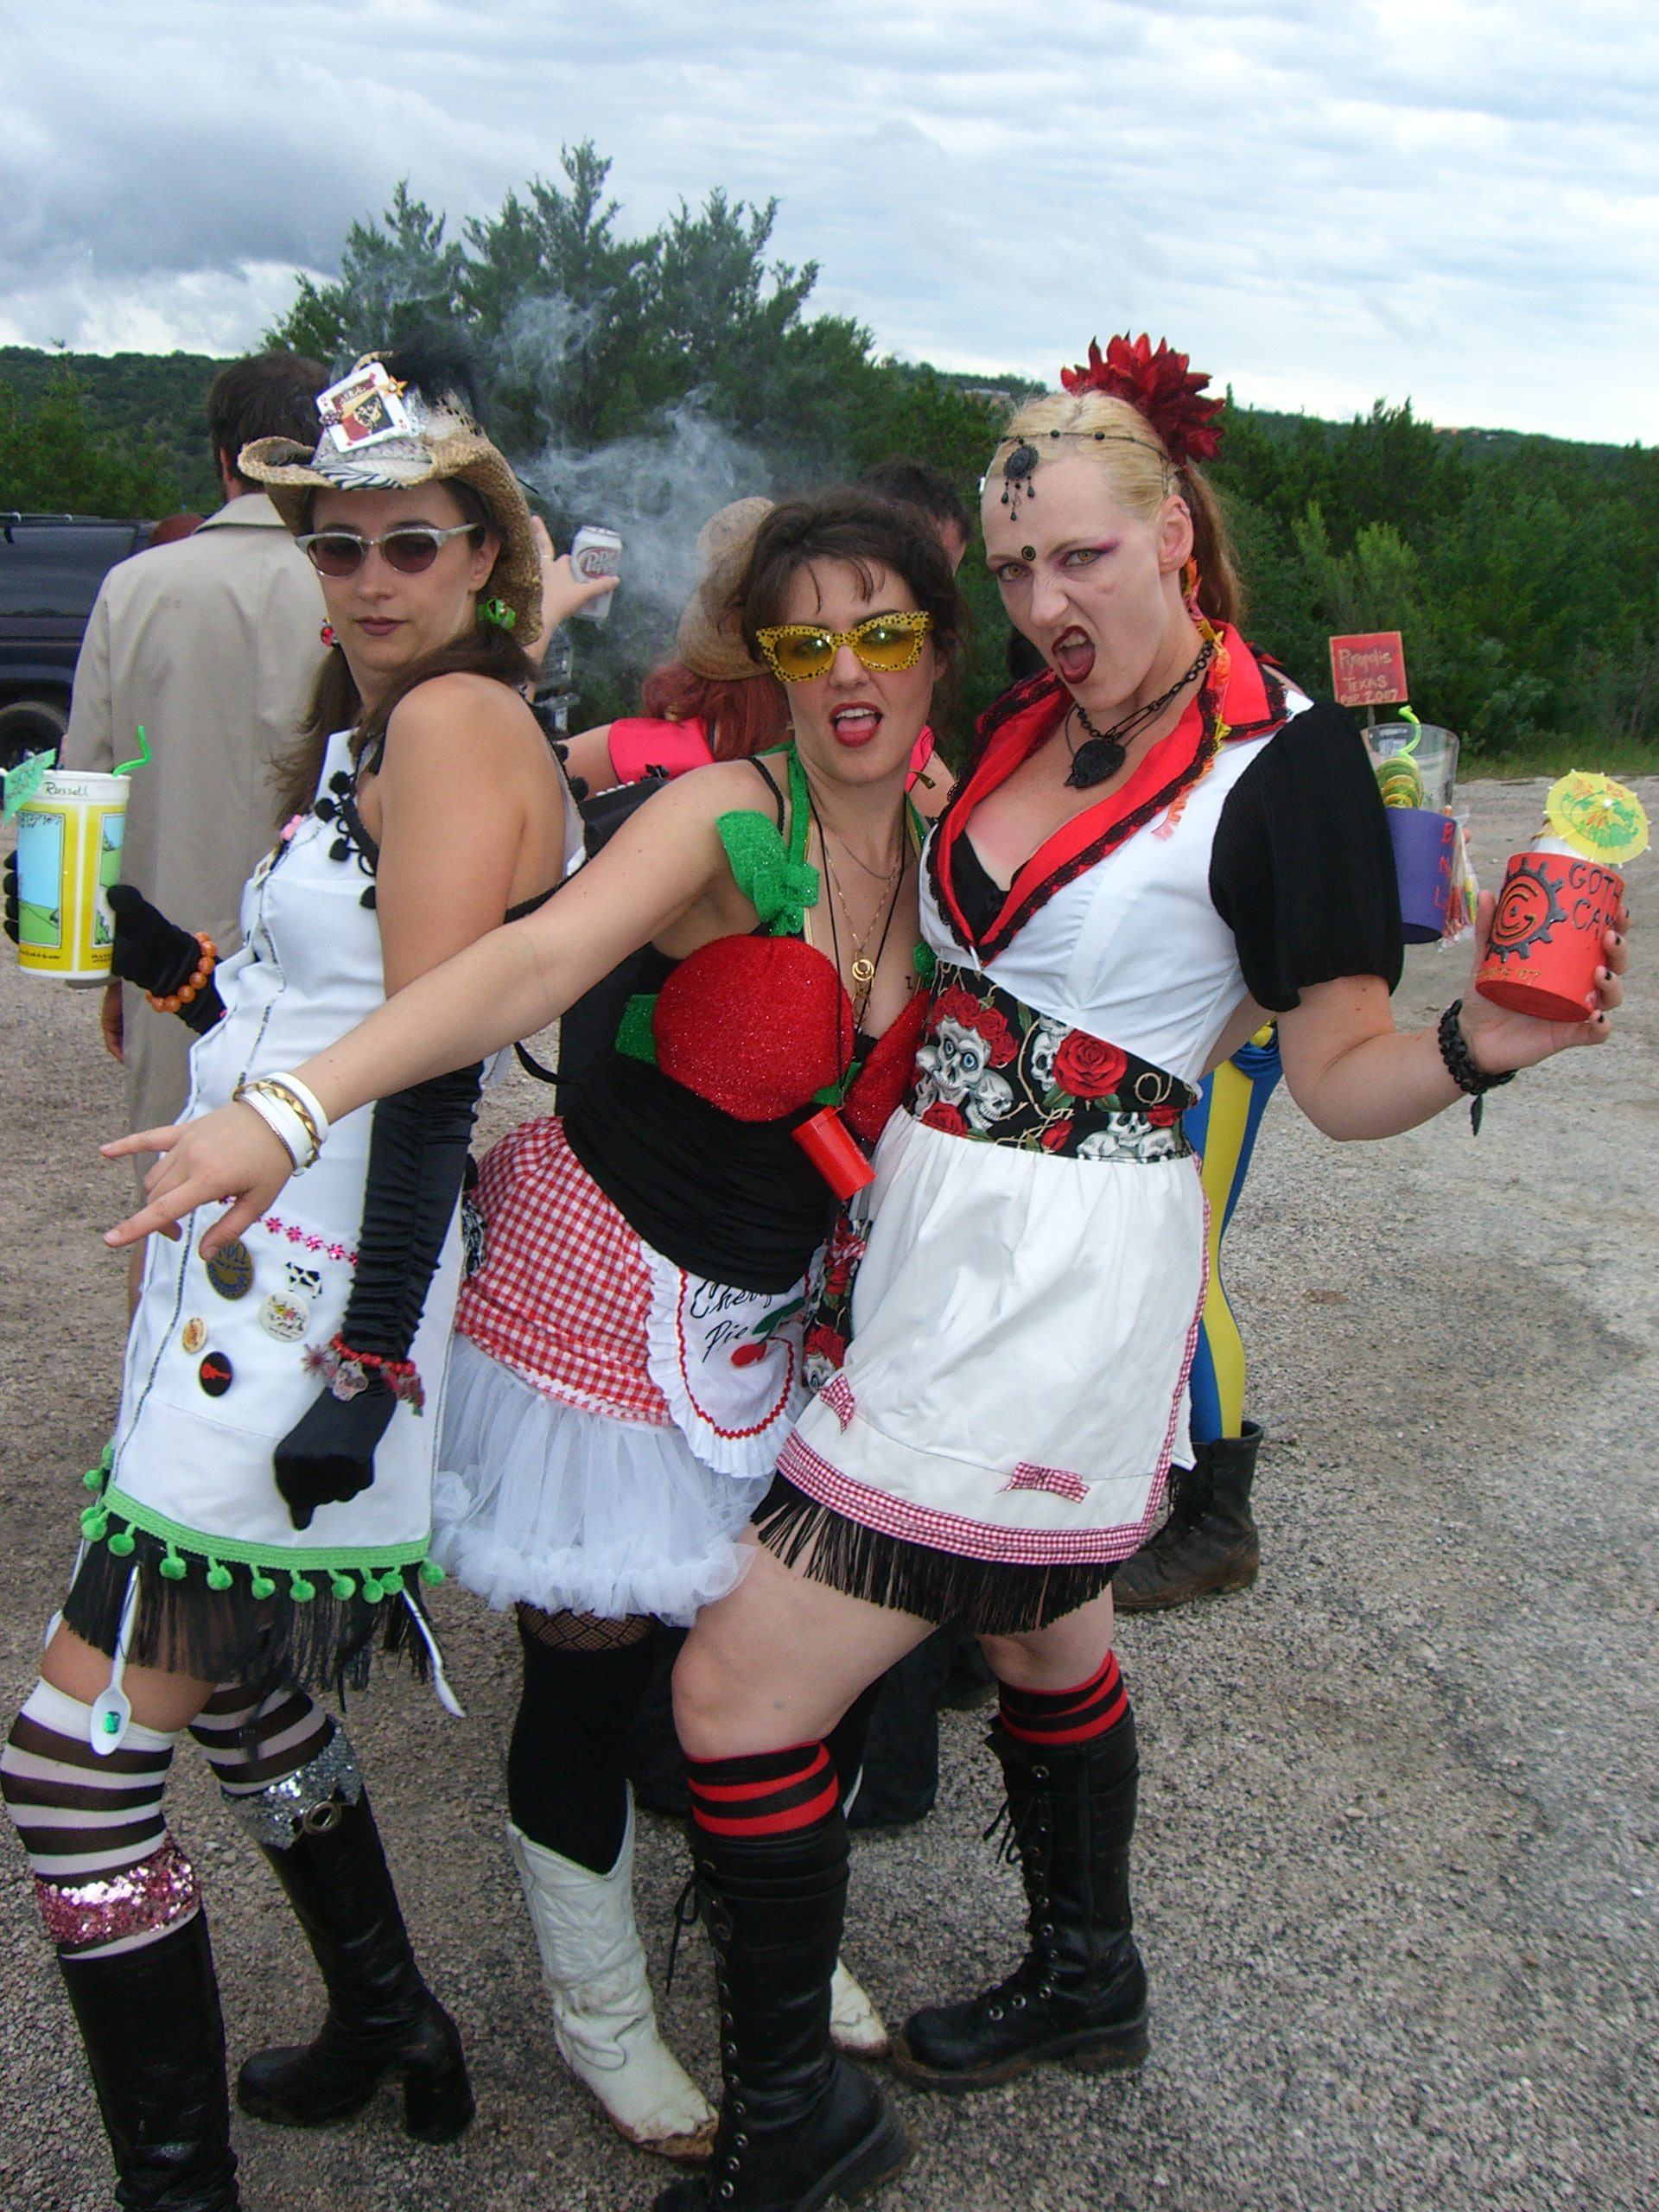 The greeters at the greeters station at Burning Flipside 2007